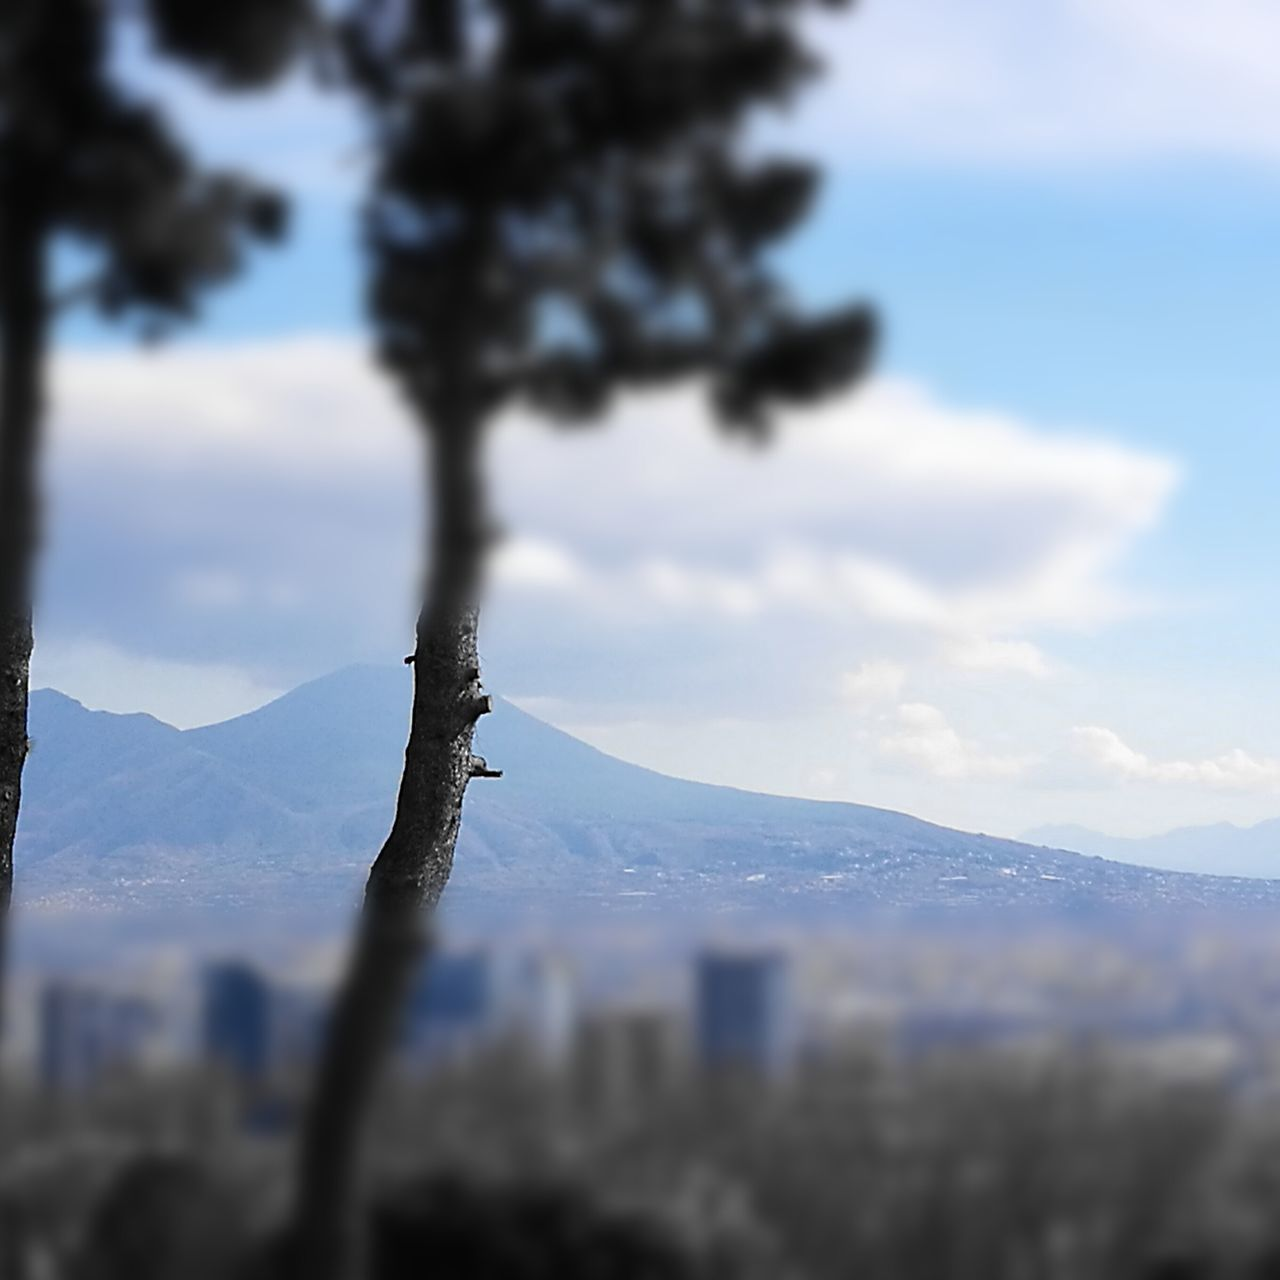 ...Prospettive...Naples Landscape Tree No People Scenics Nature Outdoors Mountain Sky Beauty In Nature Day Cloud - Sky Tranquility Dramatic Sky Close-up Water Napoli Naples🌊💙 Naples, Italy Vesuvio The City Light Lieblingsteil